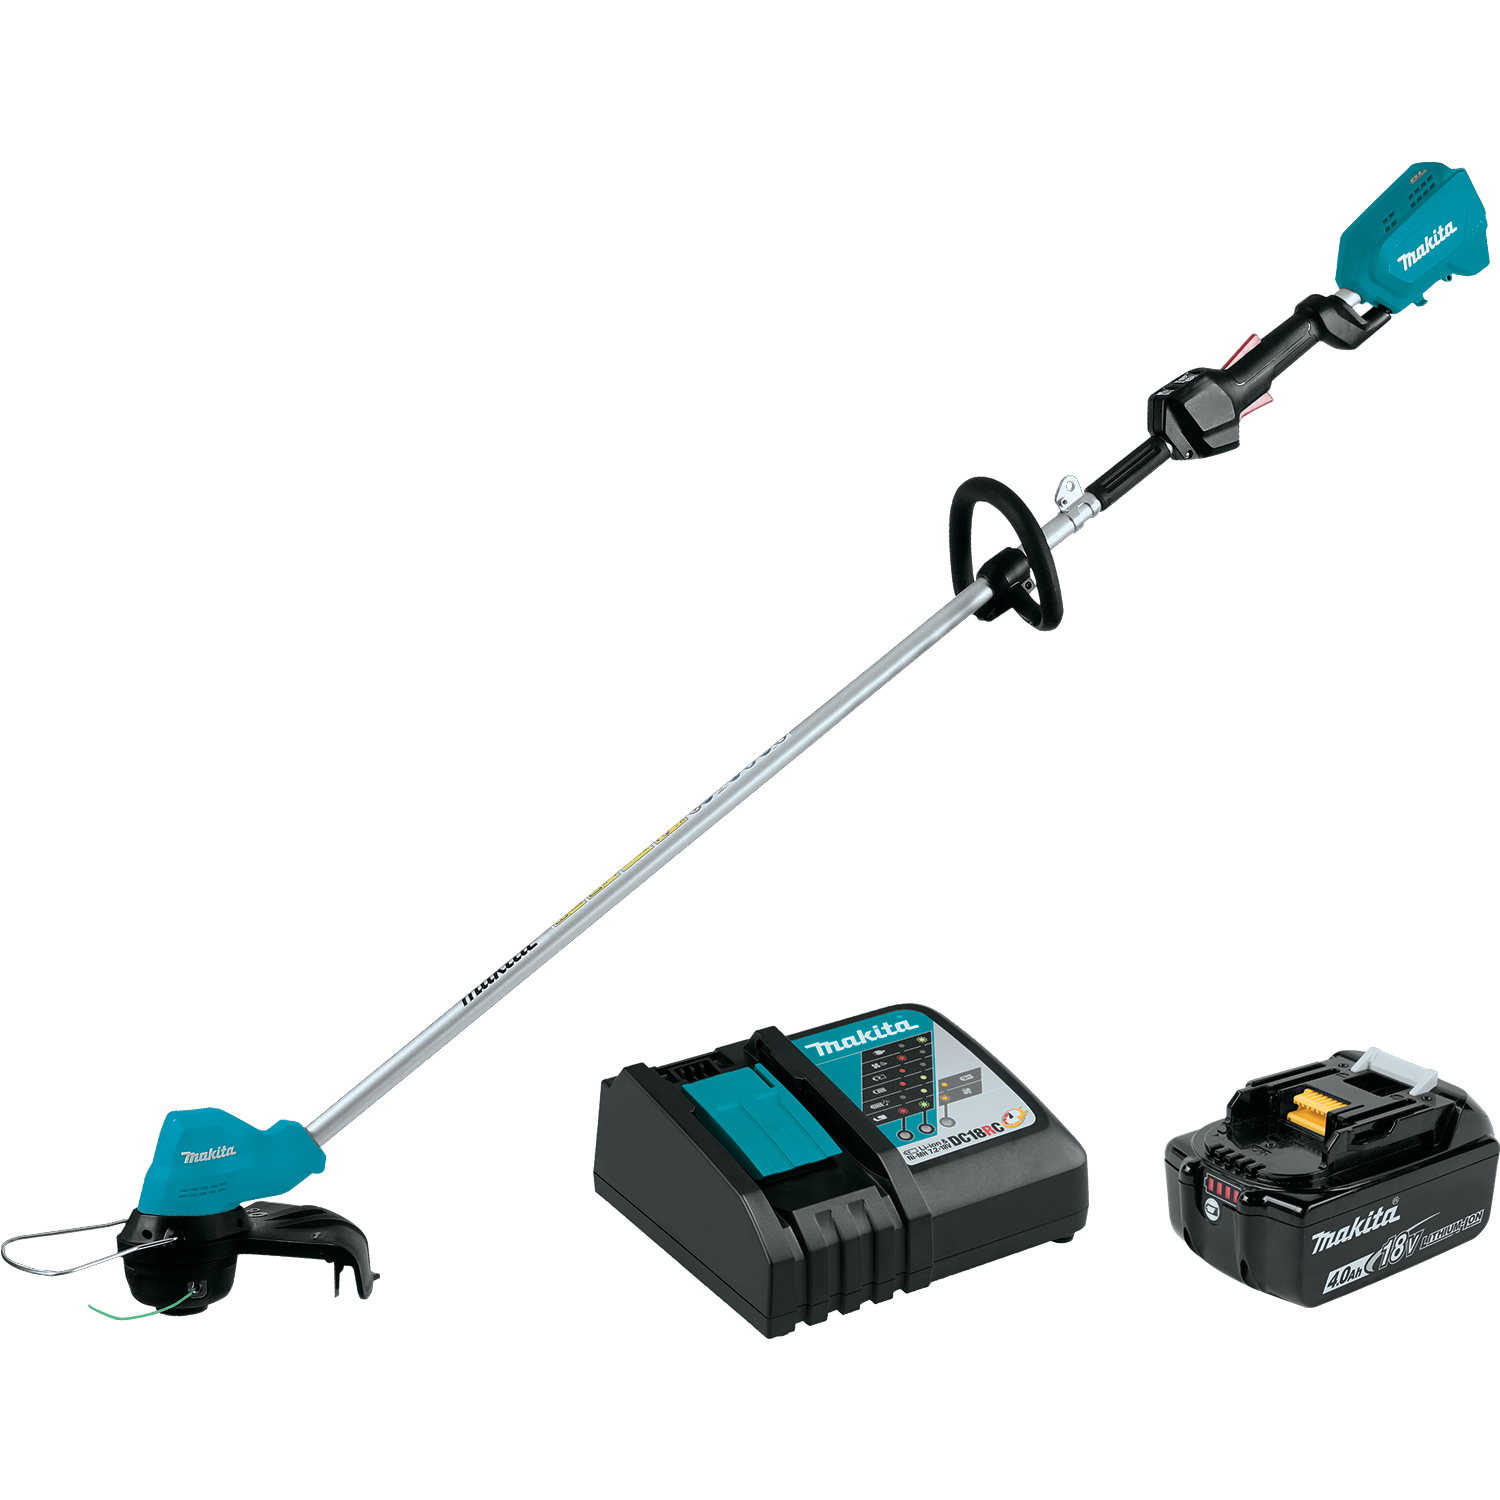 18V Lithium-Ion Electric Cordless String Trimmer Battery Charger Not Included